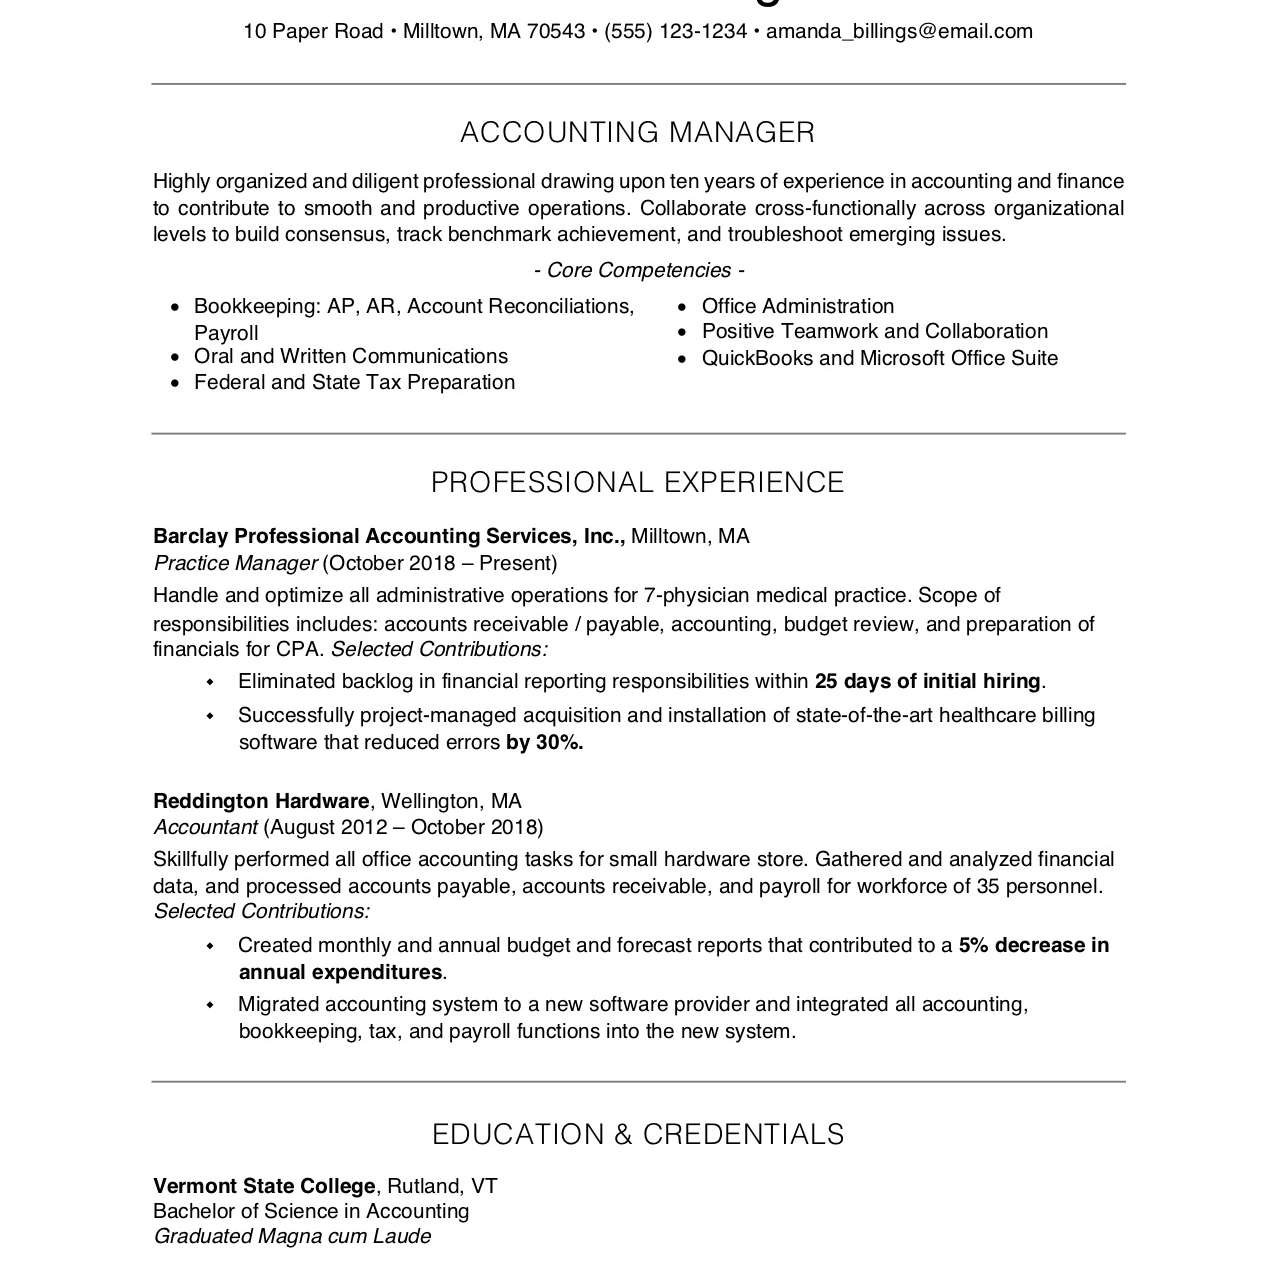 free professional resume examples and writing tips competency template 2063596res1 for Resume Competency Resume Template